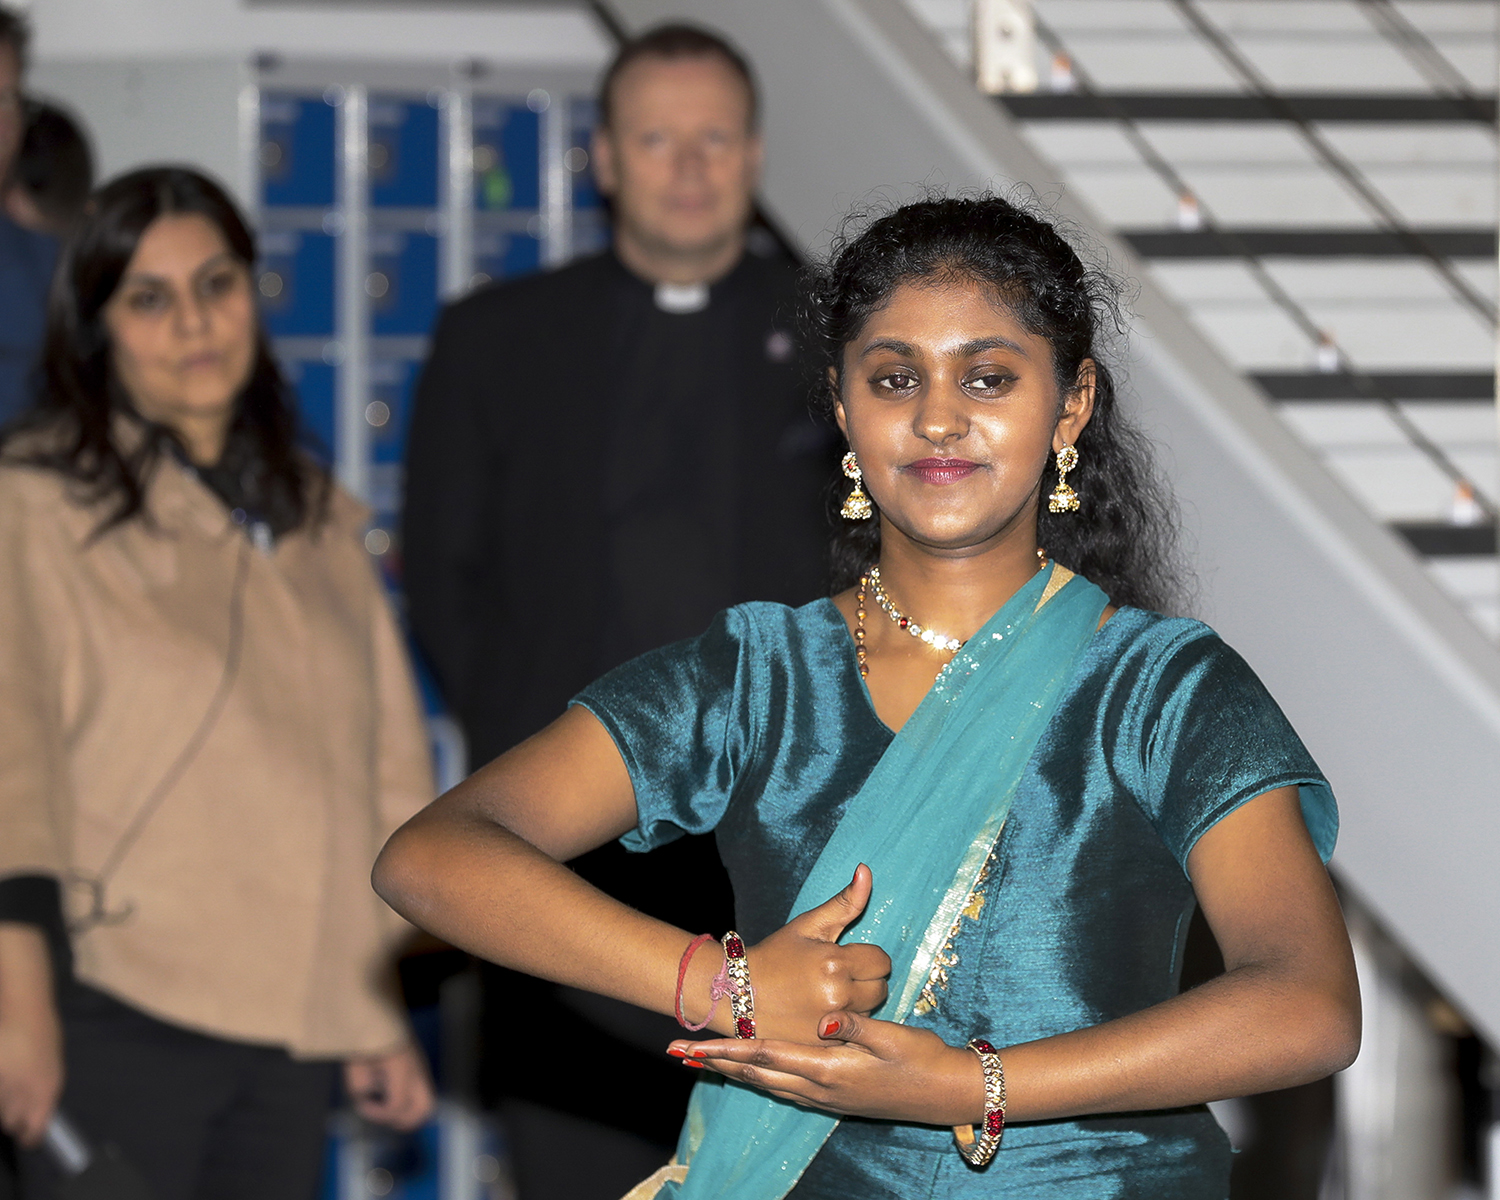 Portsmouth Naval Command Headquarters hosts Diwali for Armed Forces Hindu Network